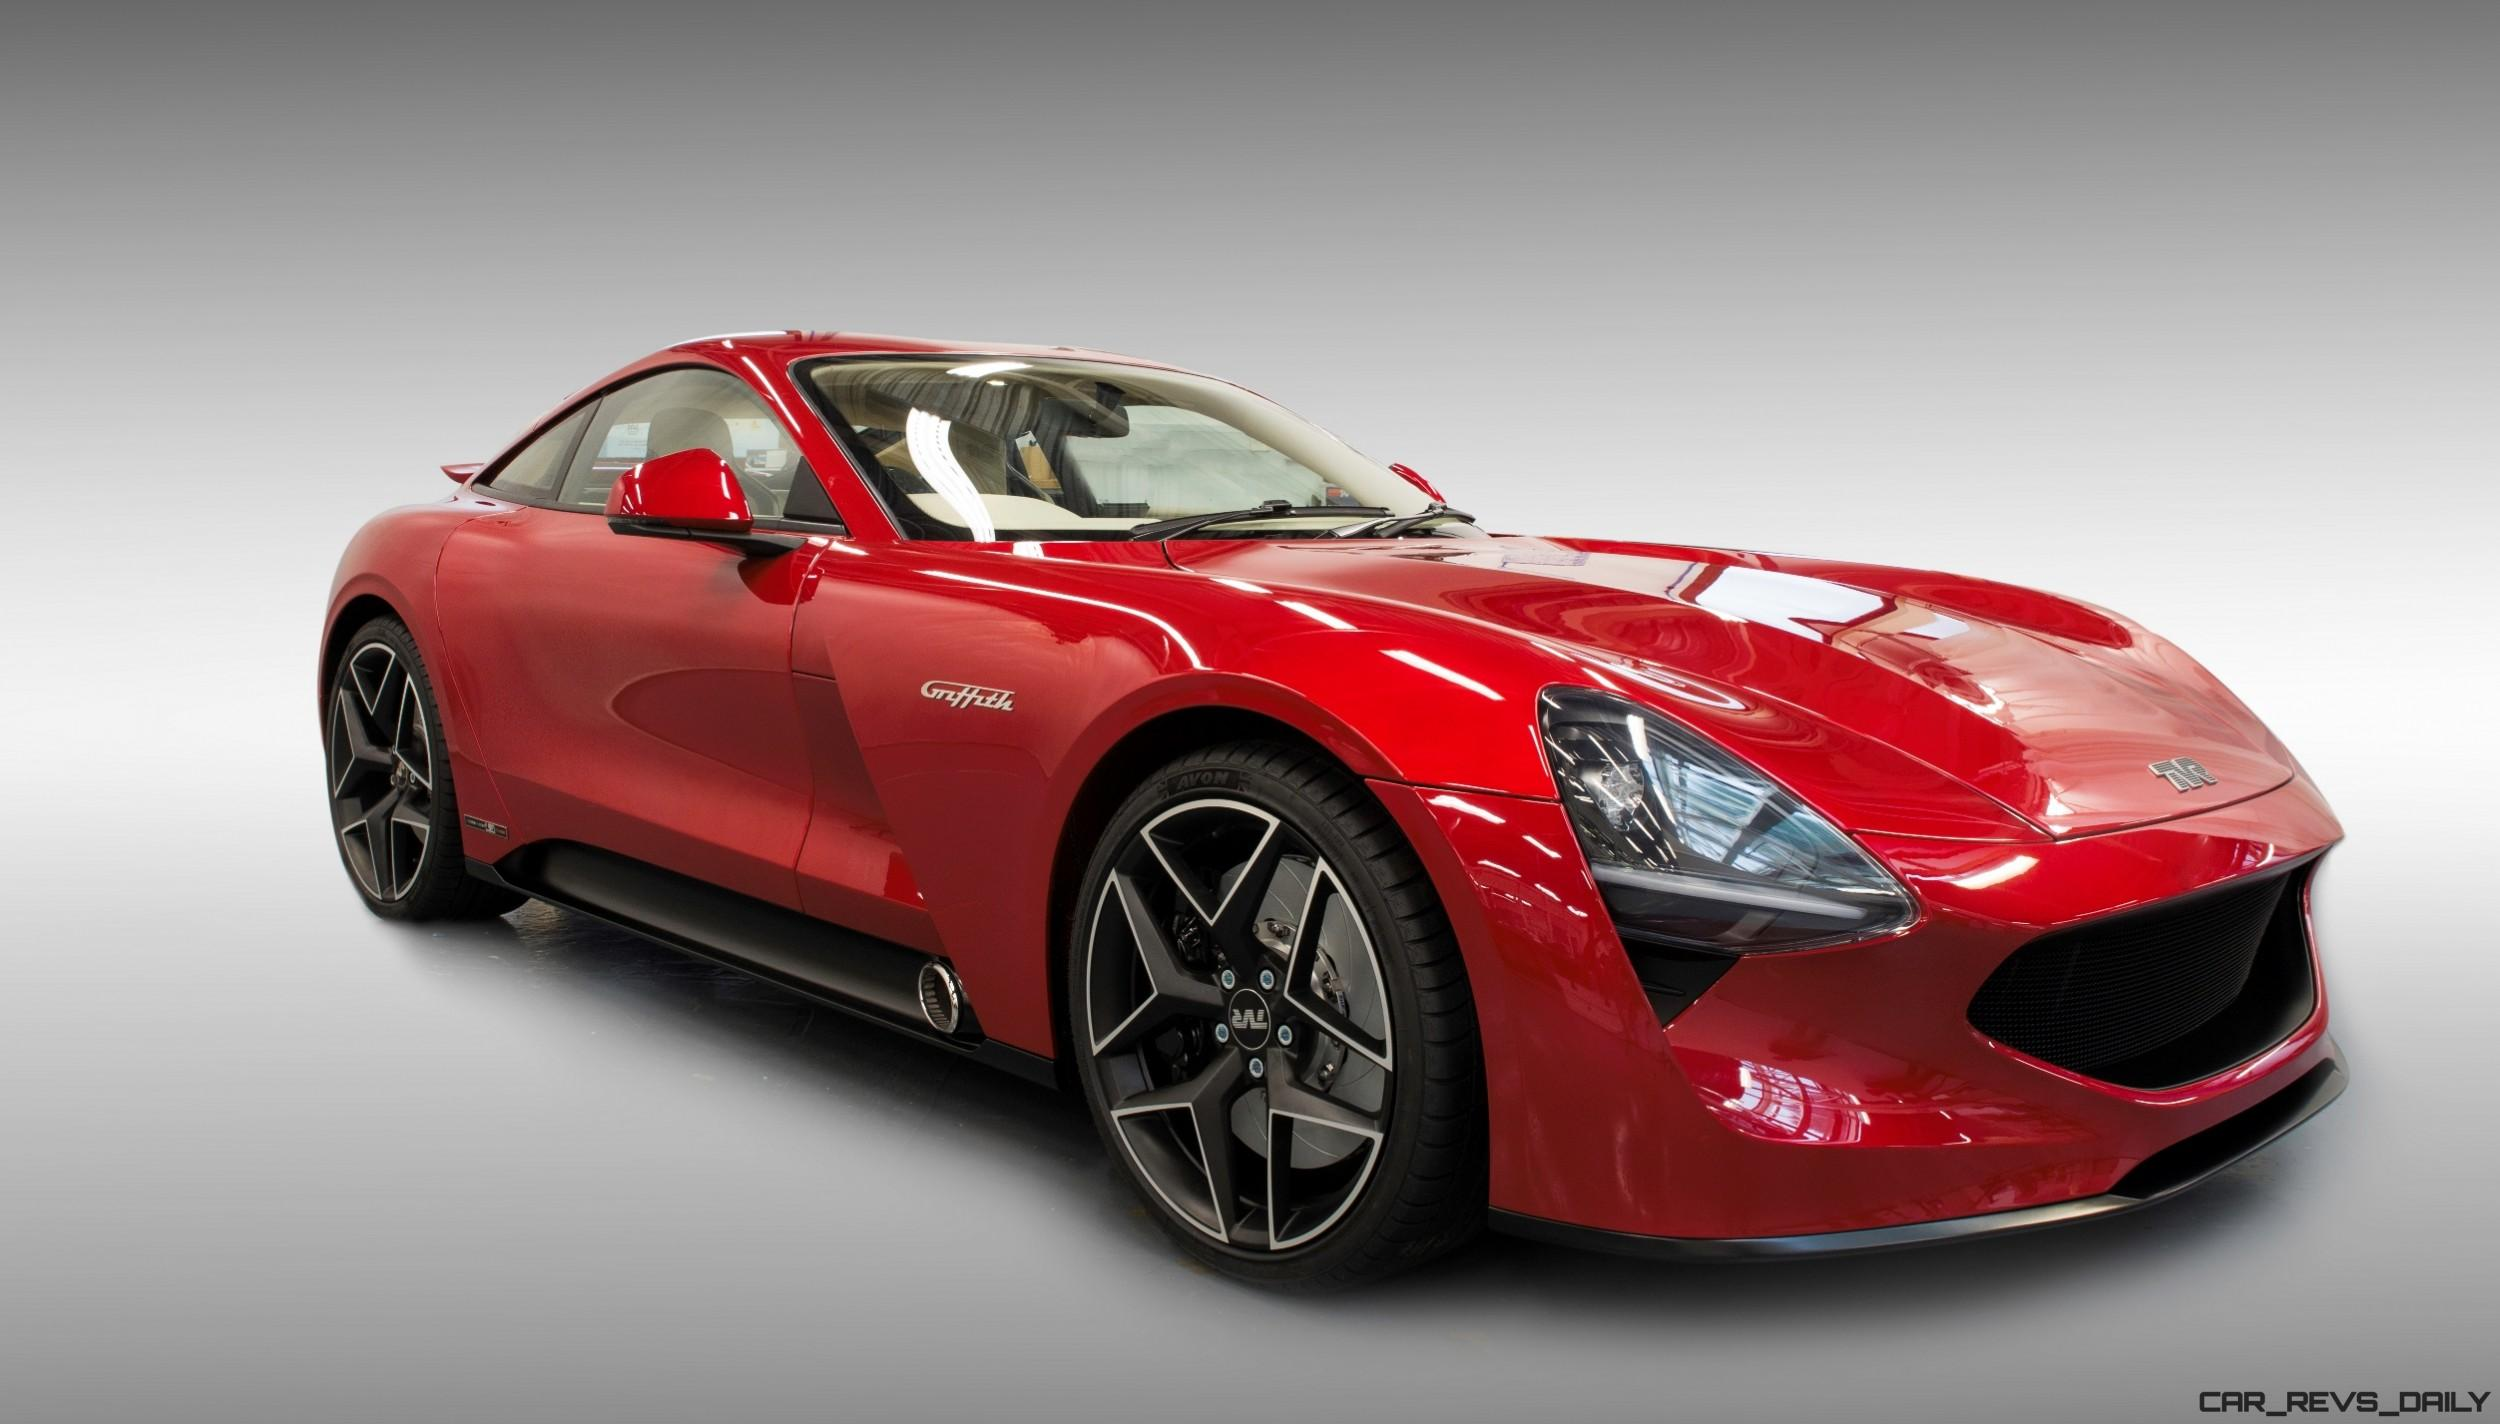 2018 tvr griffith gordon murray carbon supercar is real. Black Bedroom Furniture Sets. Home Design Ideas